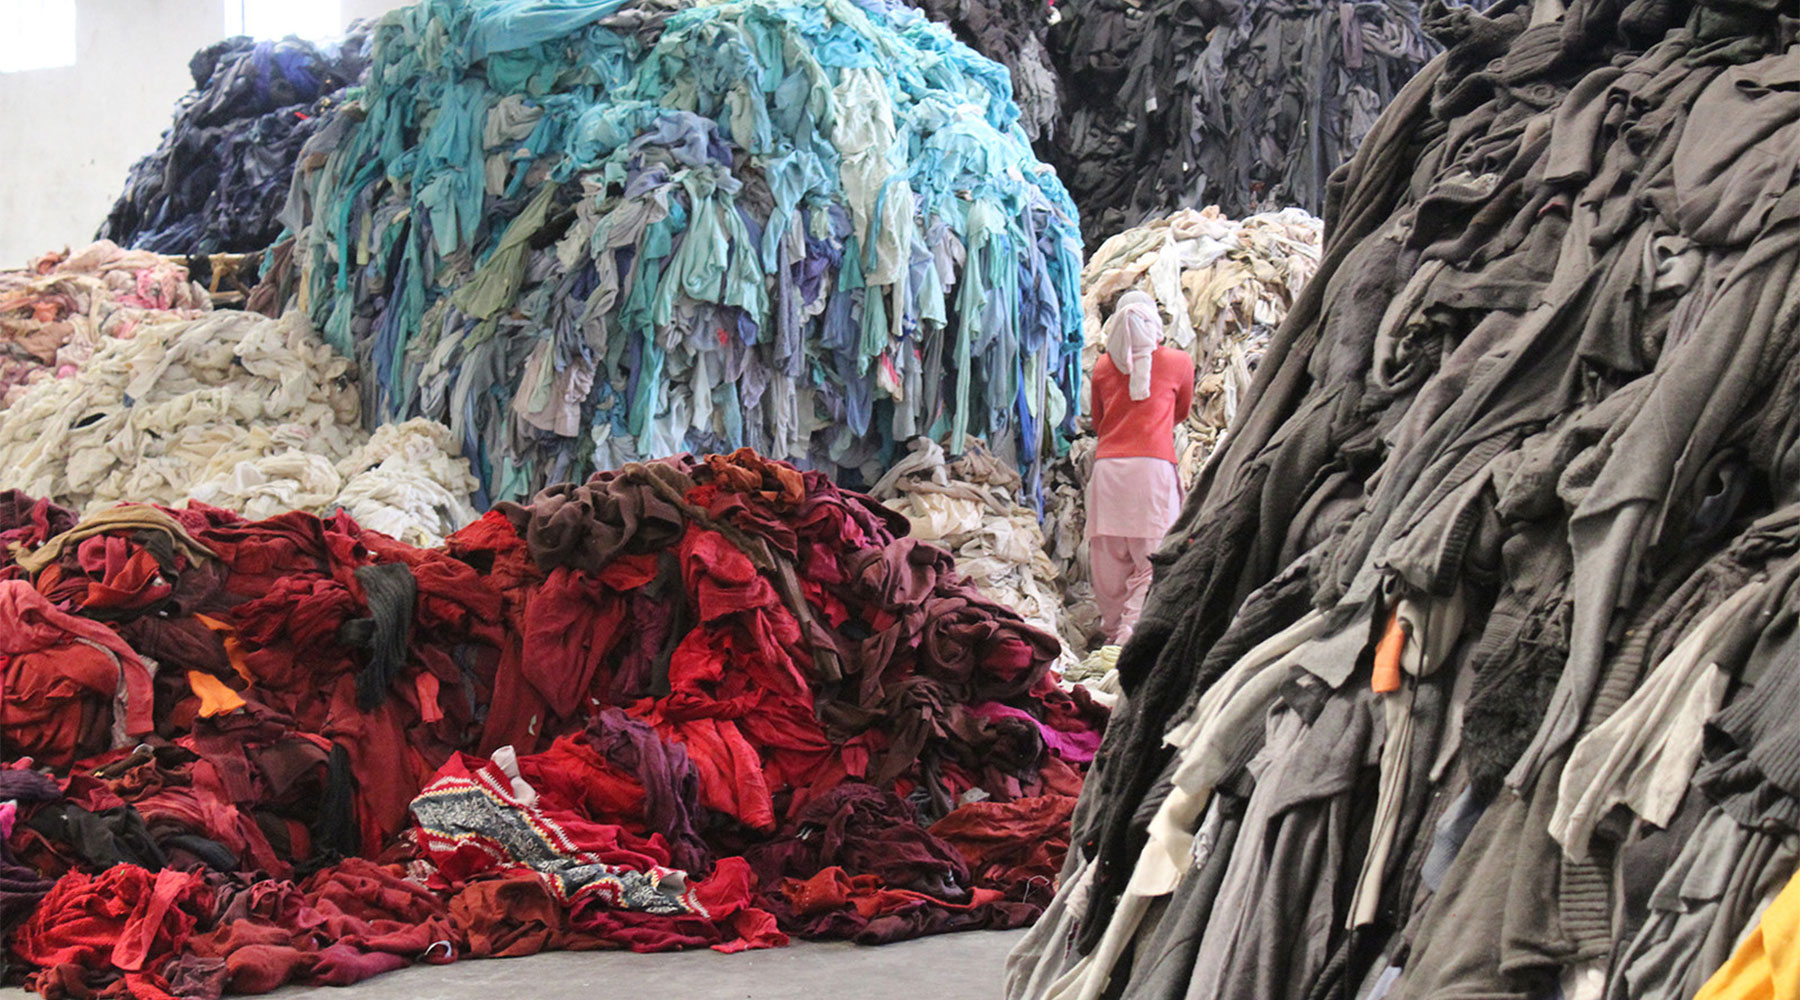 6 Major Benefits of Upcycling in the Fashion Industry